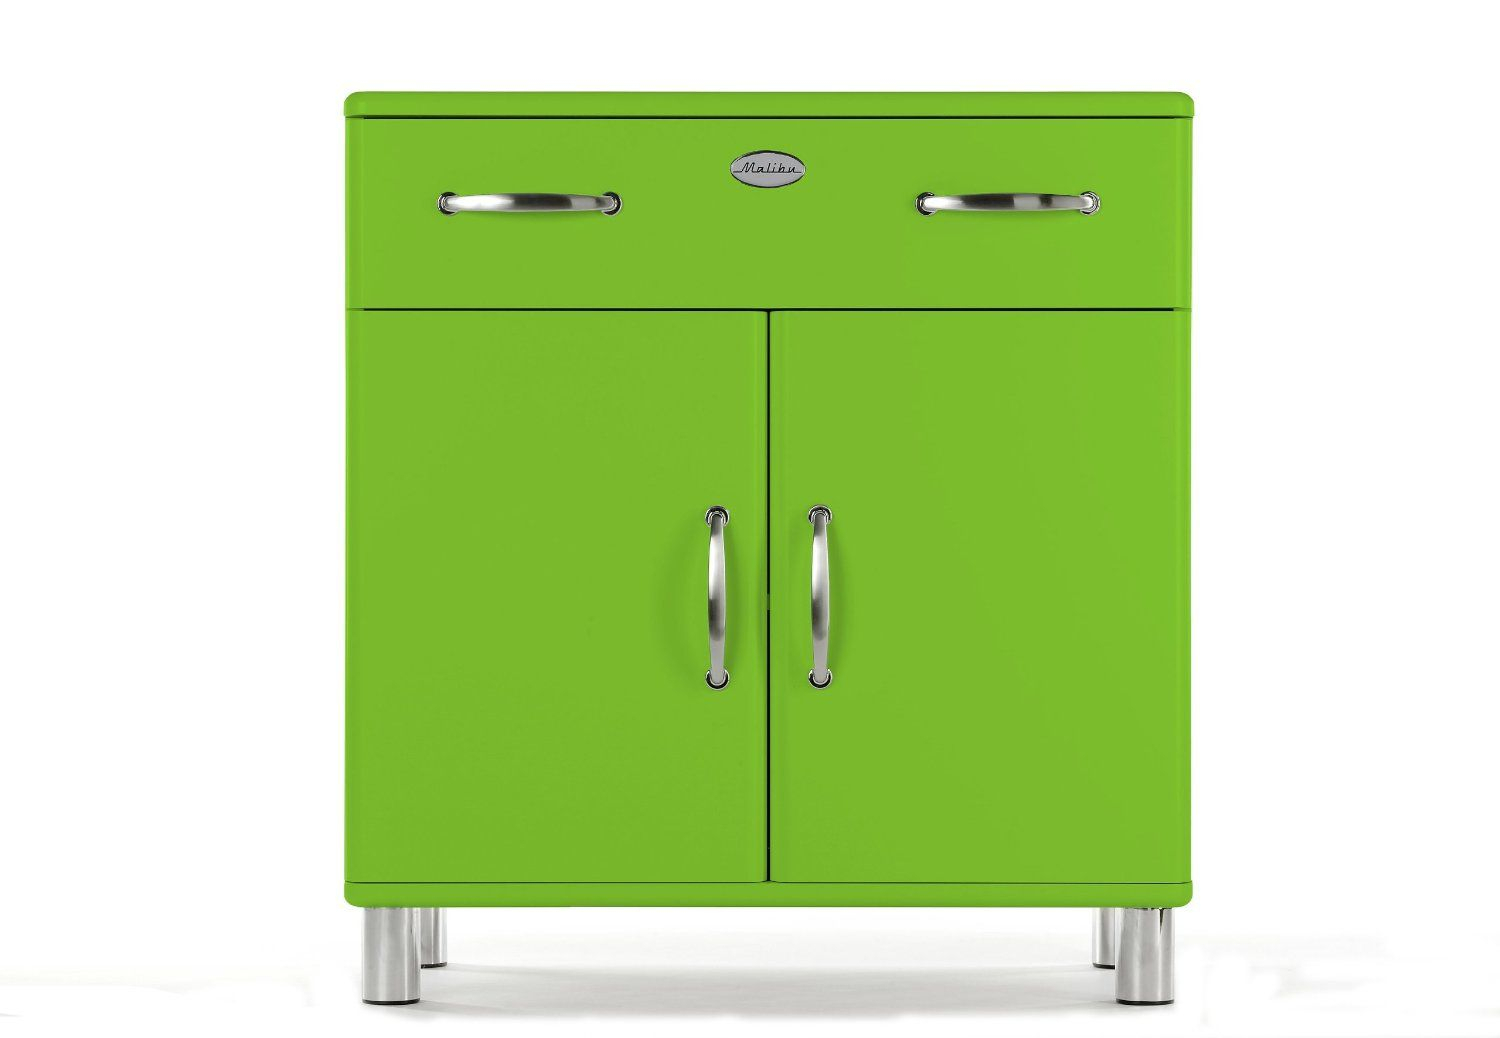 Tenzo 5127 021 Malibu, Designer Kommode, 92 X 86 X 41 Cm Regarding 2017 Malibu 2 Door 1 Drawer Sideboards (View 16 of 20)